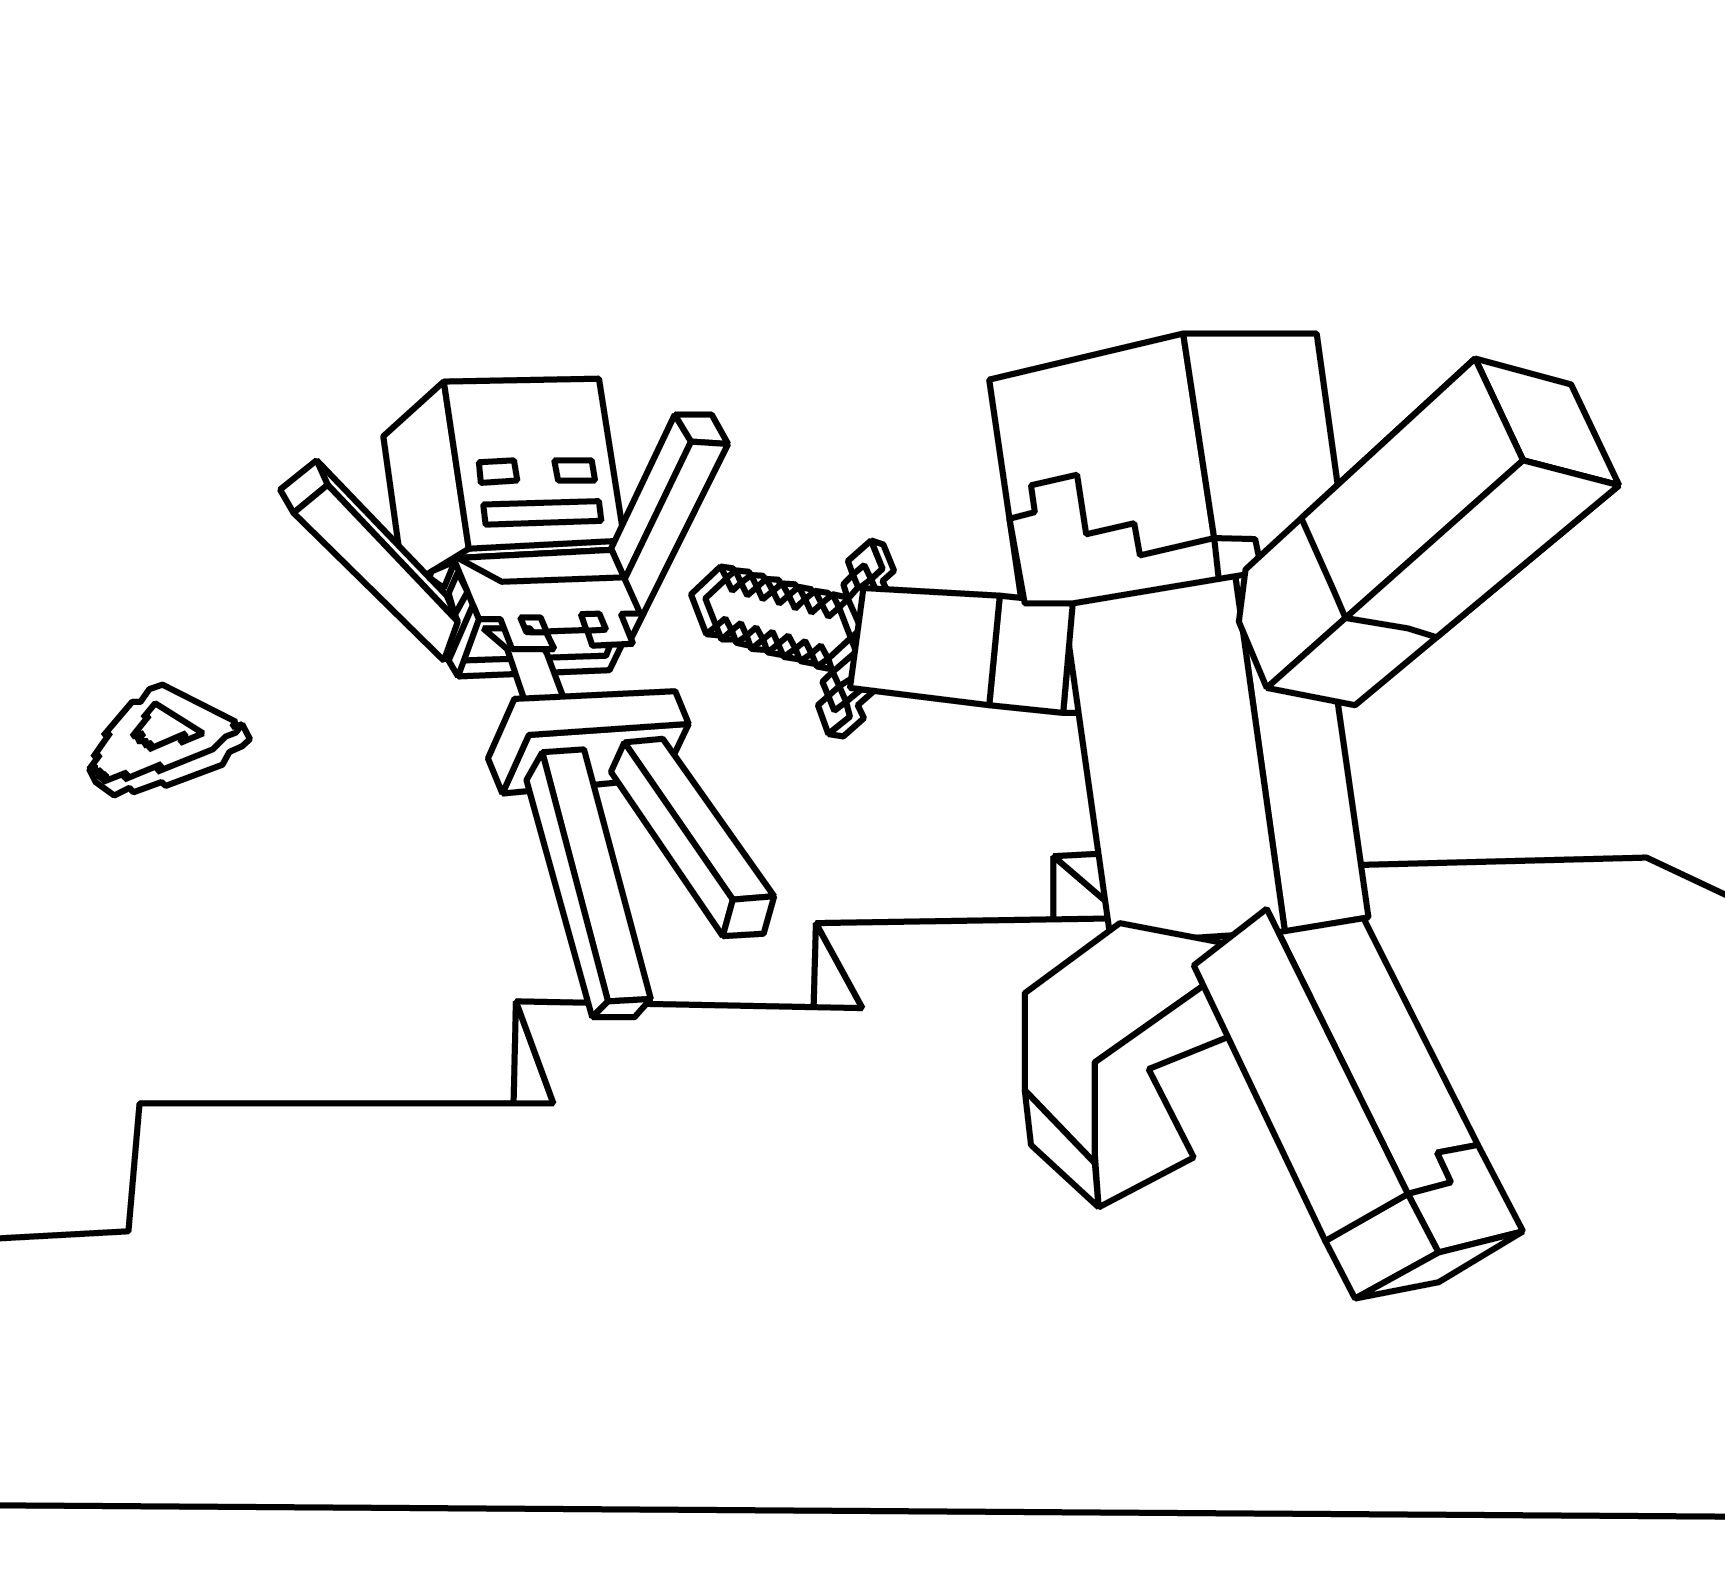 Minecraft Colouring Pages Online : Minecraft coloring page picture steve and